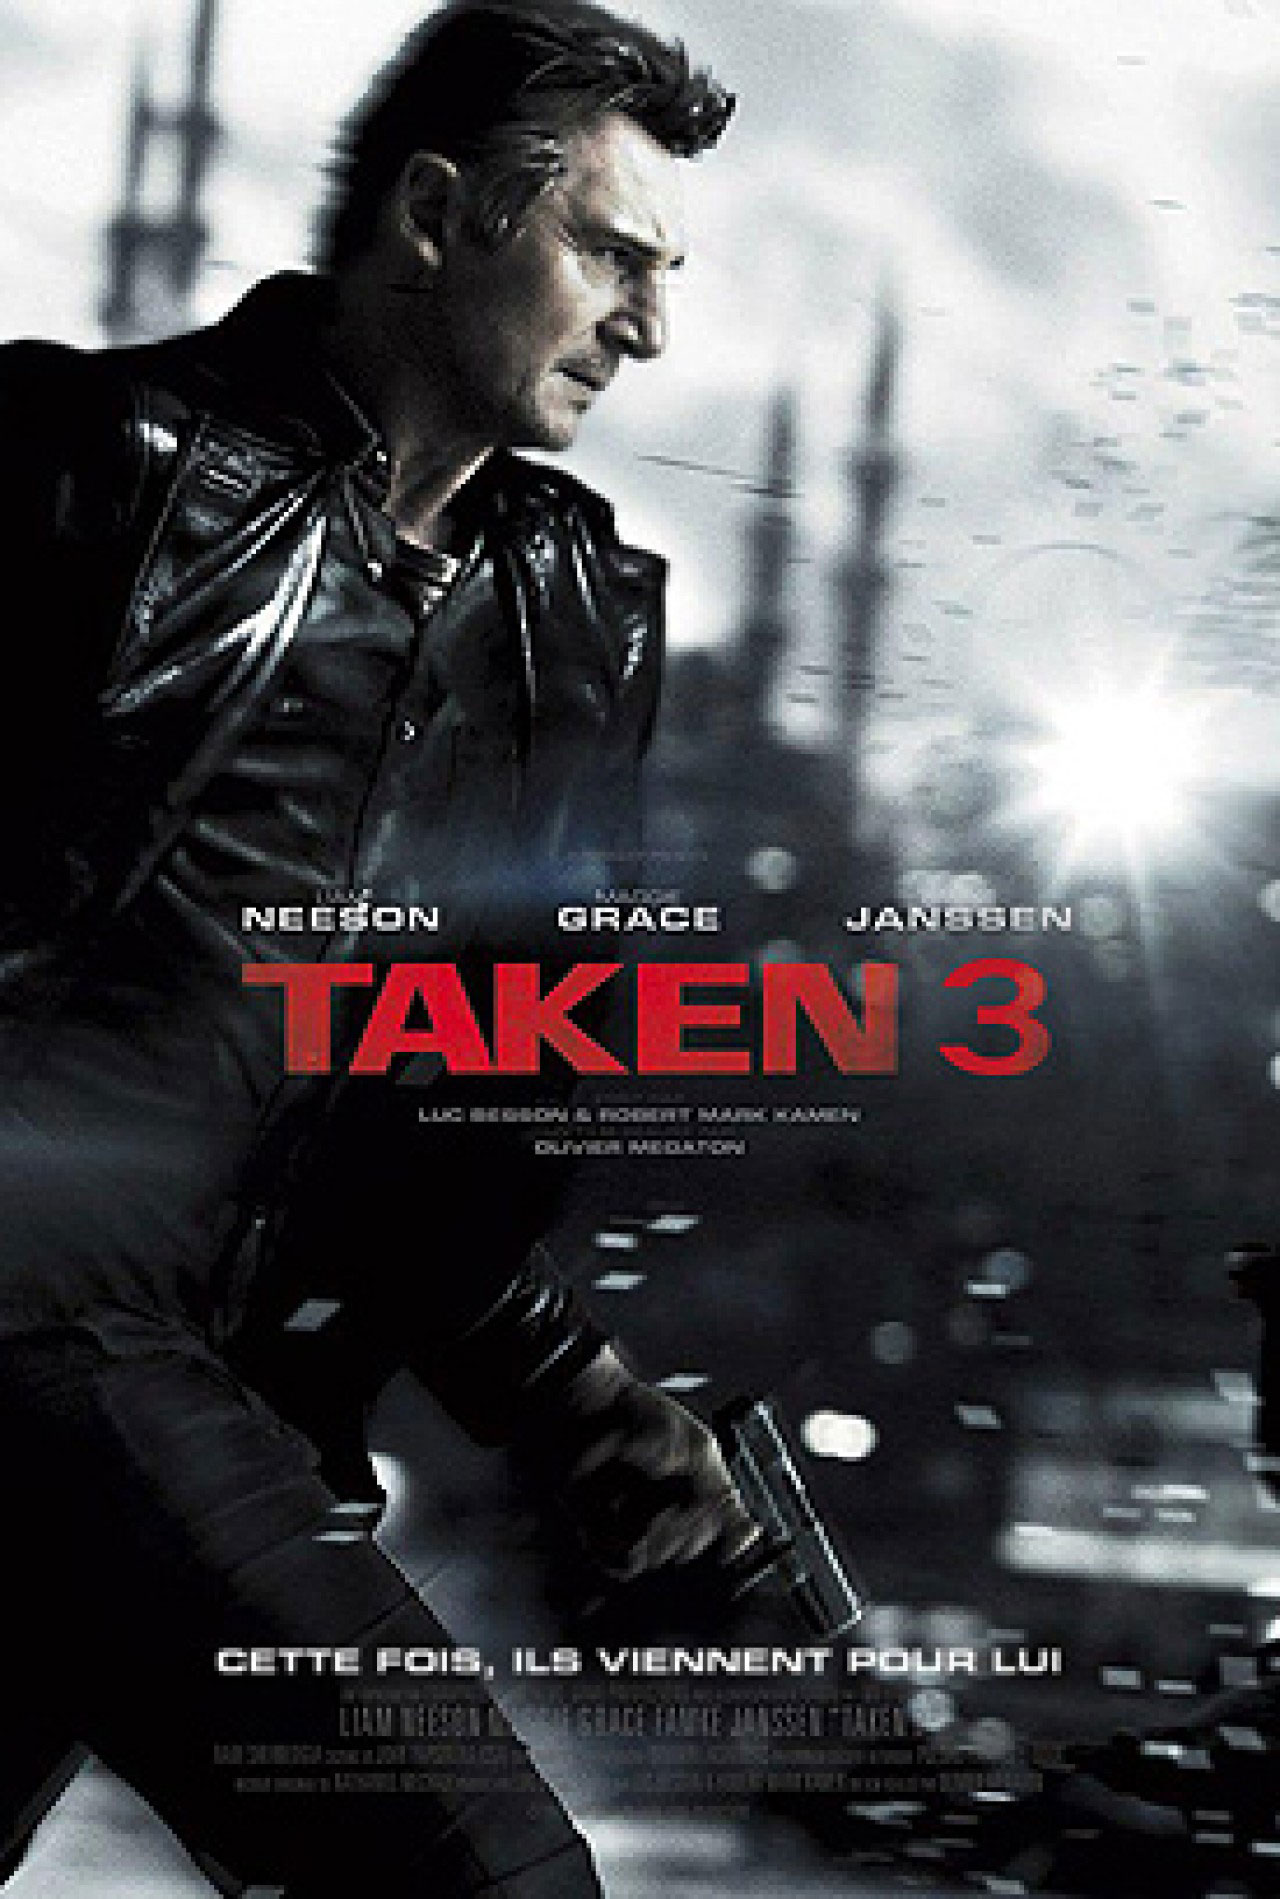 Taken 3 online for free - Bnb coin how does it work up